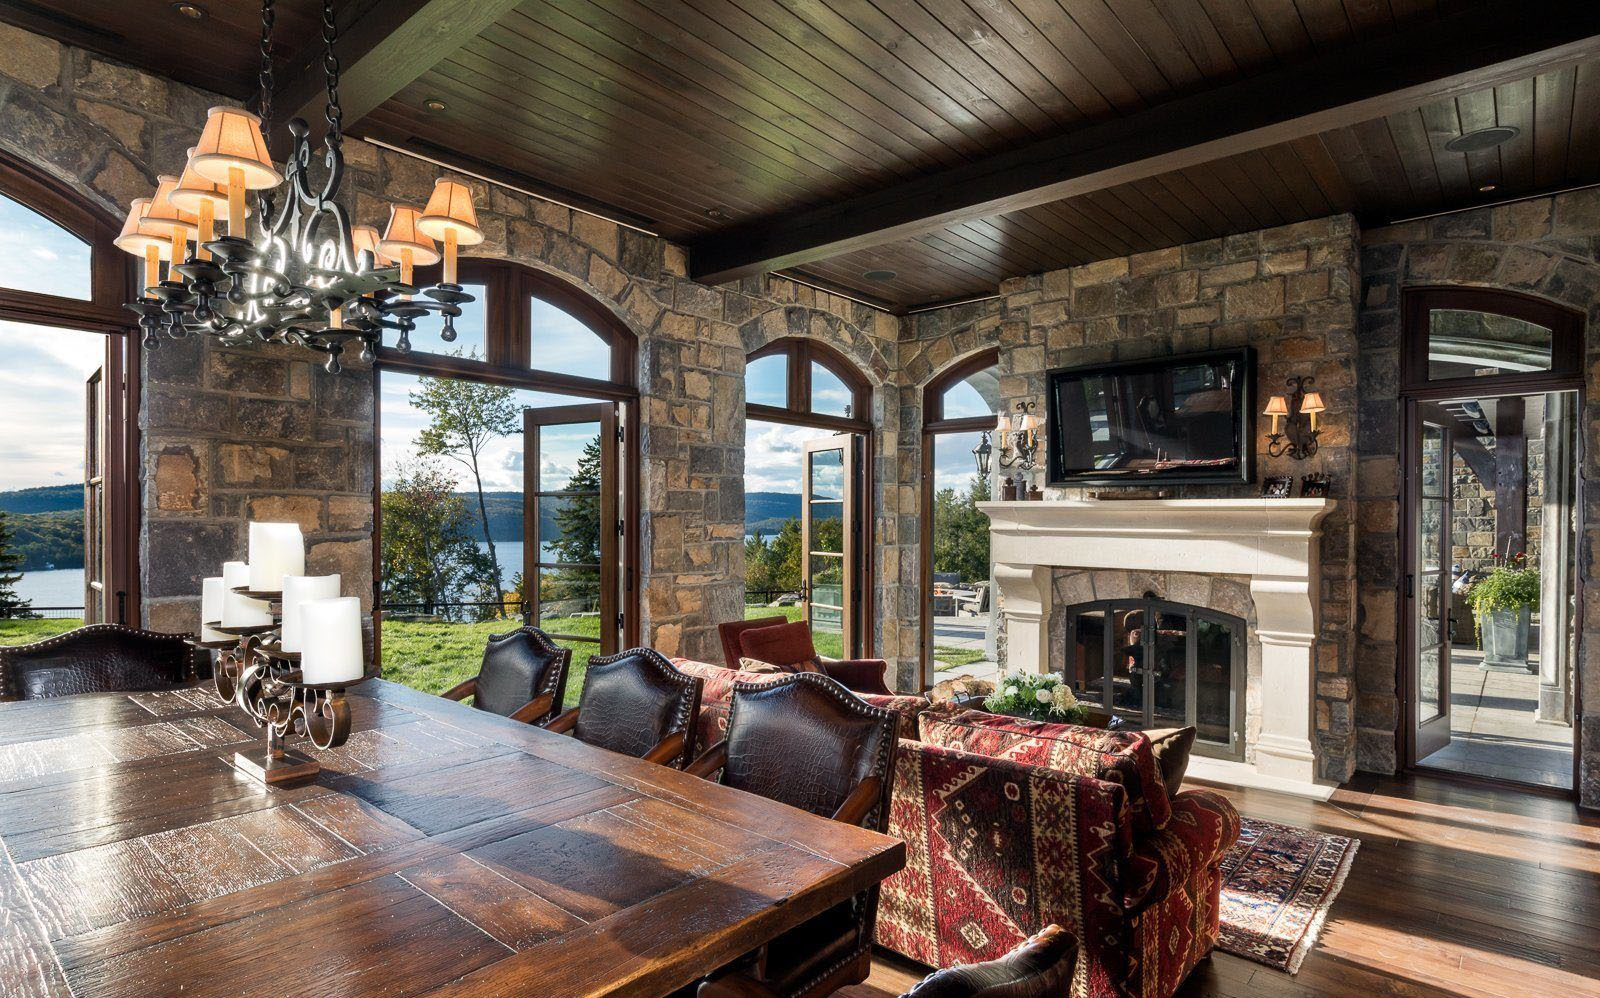 Rustic home with stone interior walls and a cast cement fireplace surround.